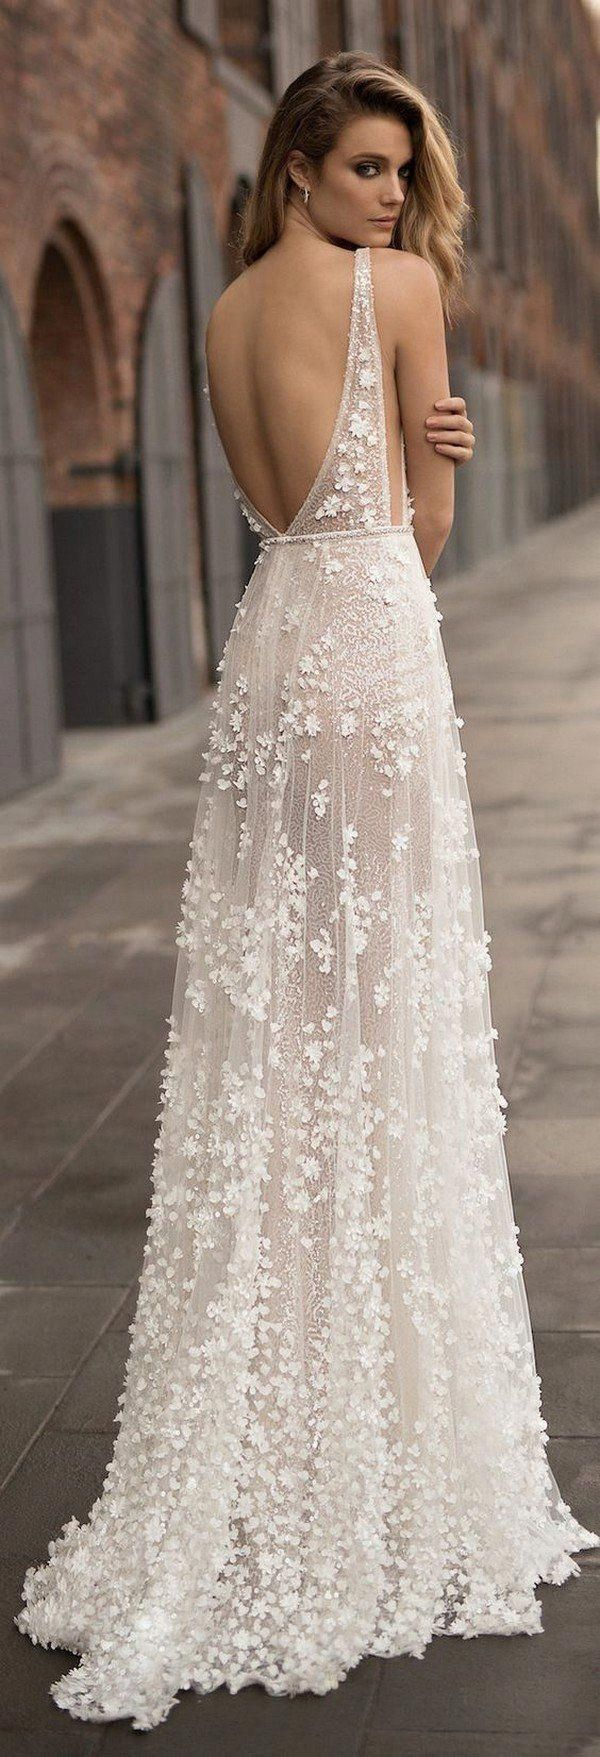 Top 18 Boho Wedding Dresses for 2018 Trends - Page 2 of 2 - Oh Best Day Ever #bertaweddingdress